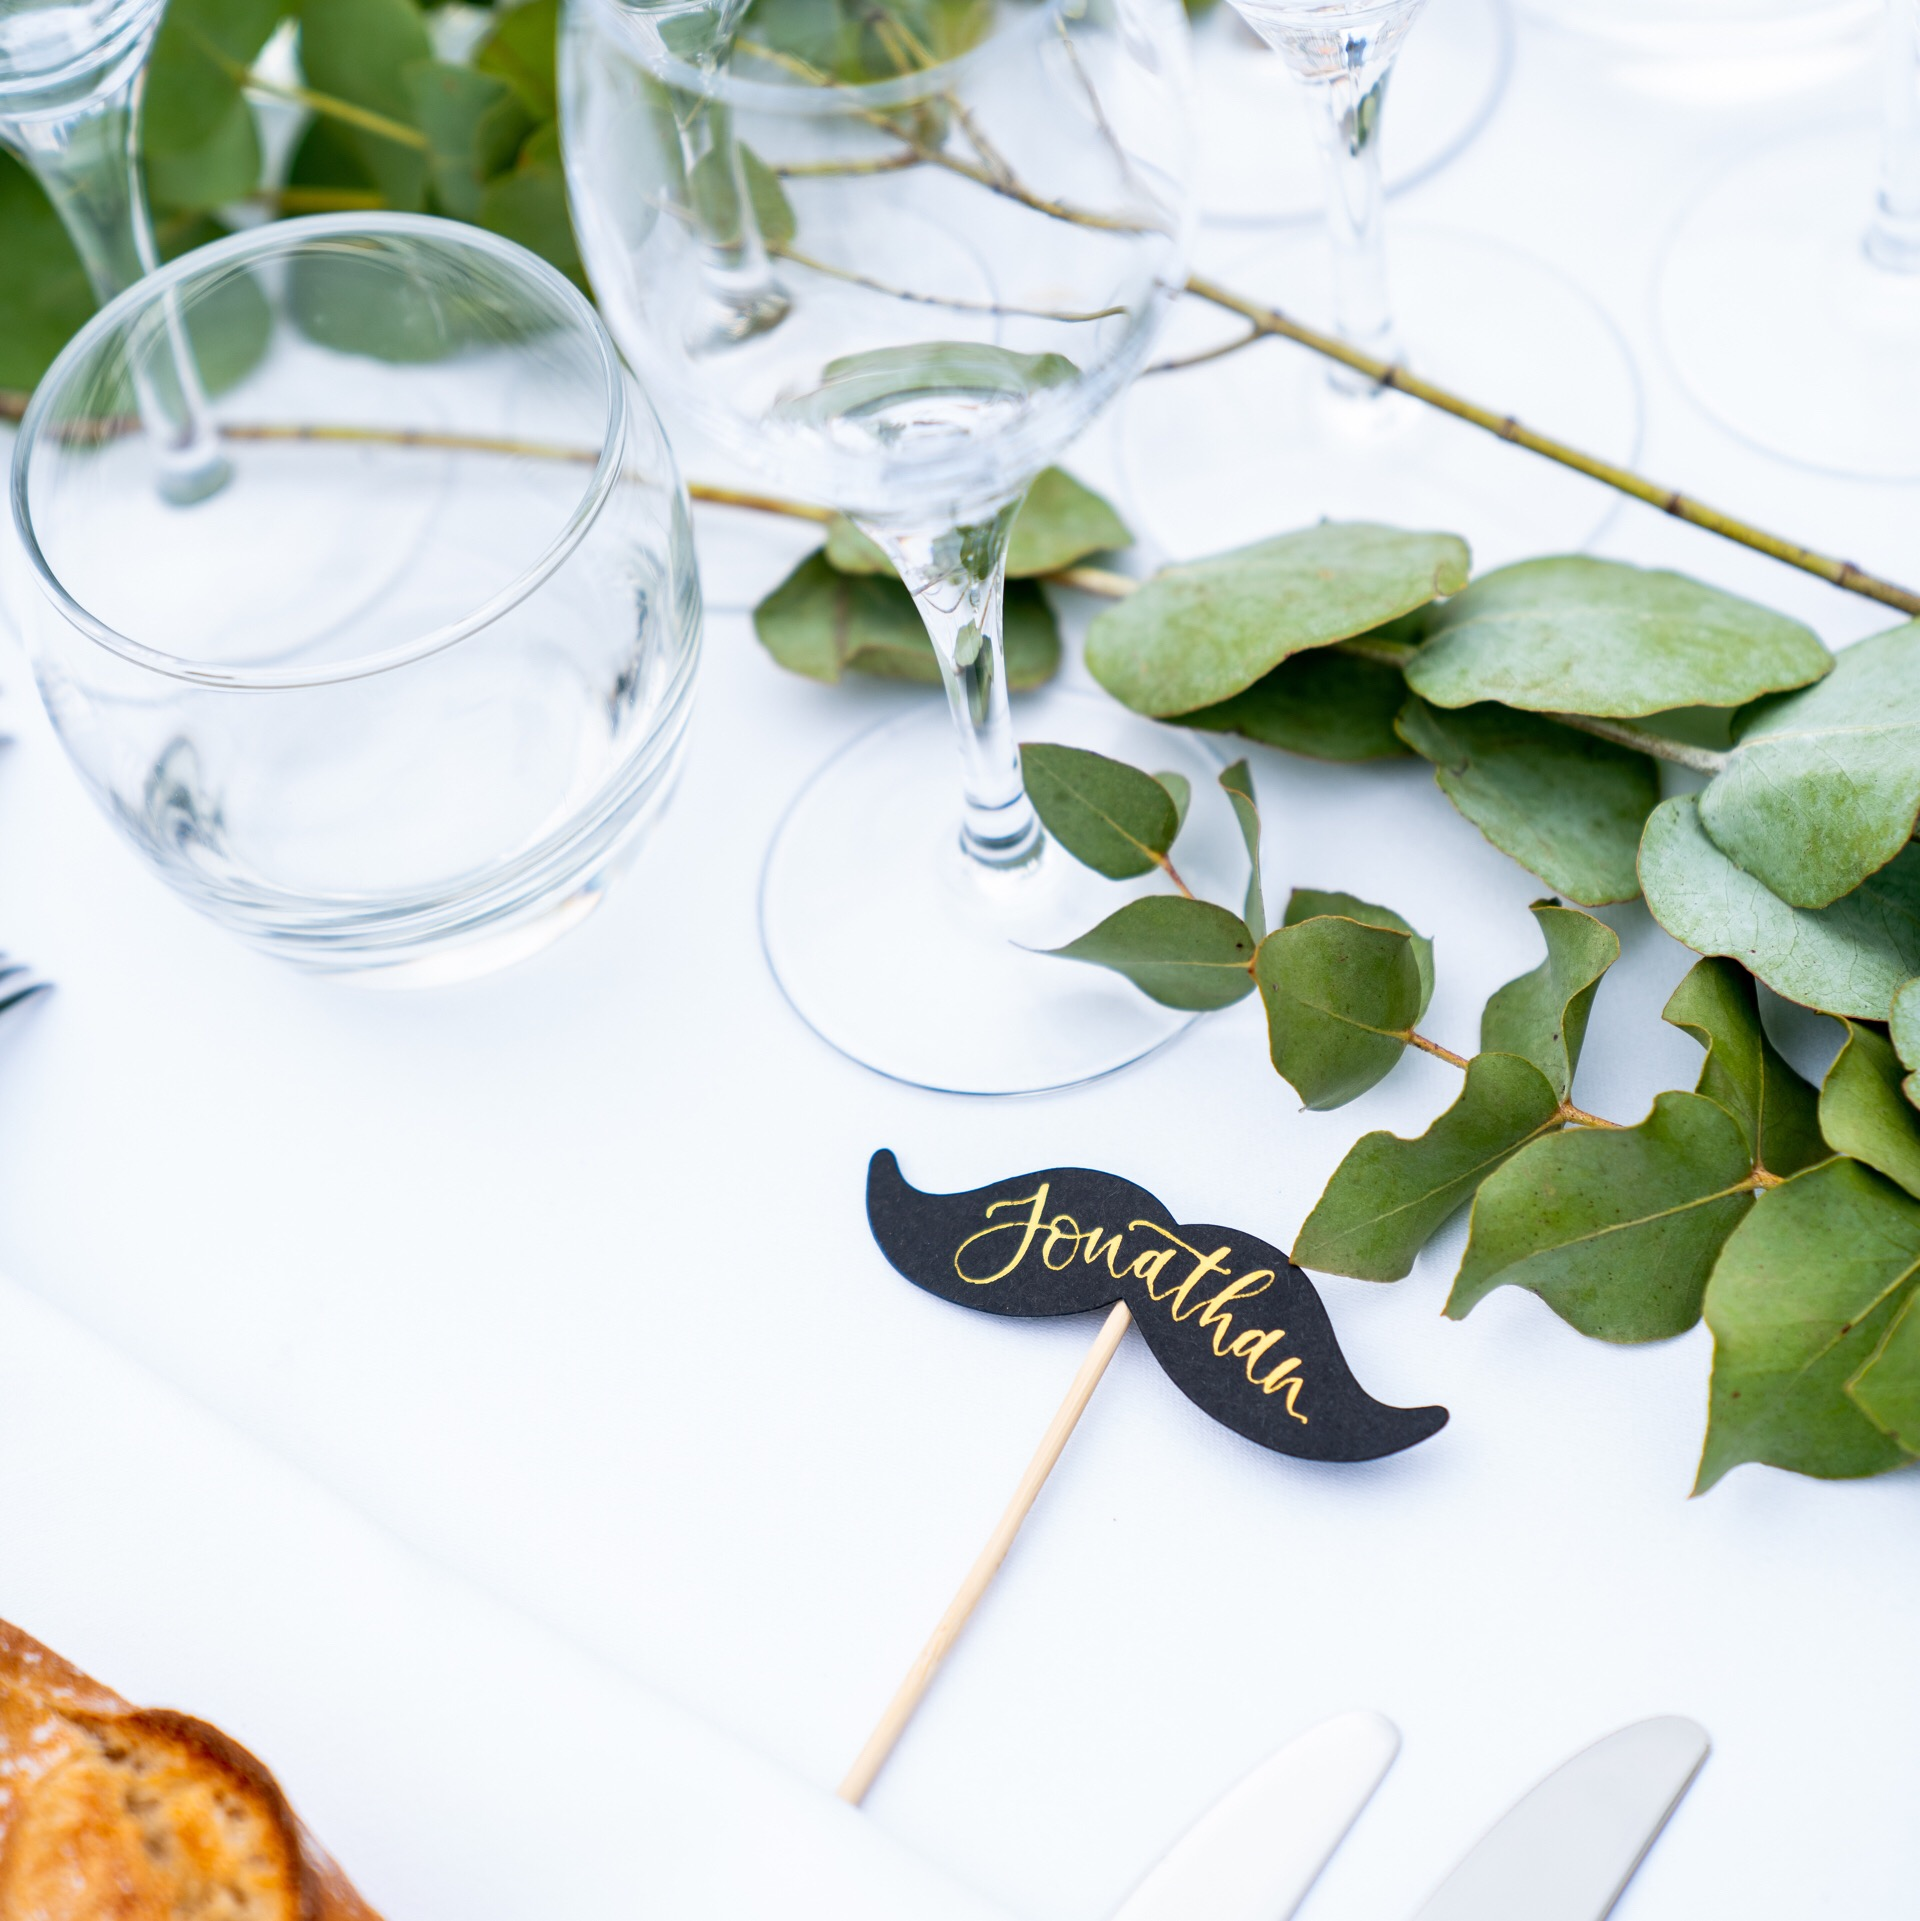 These fun moustache props were personalised for the gents to find their seats at a beautiful destination wedding in Chateau St. Martory, captured by David Wheeler Photography. There were also…